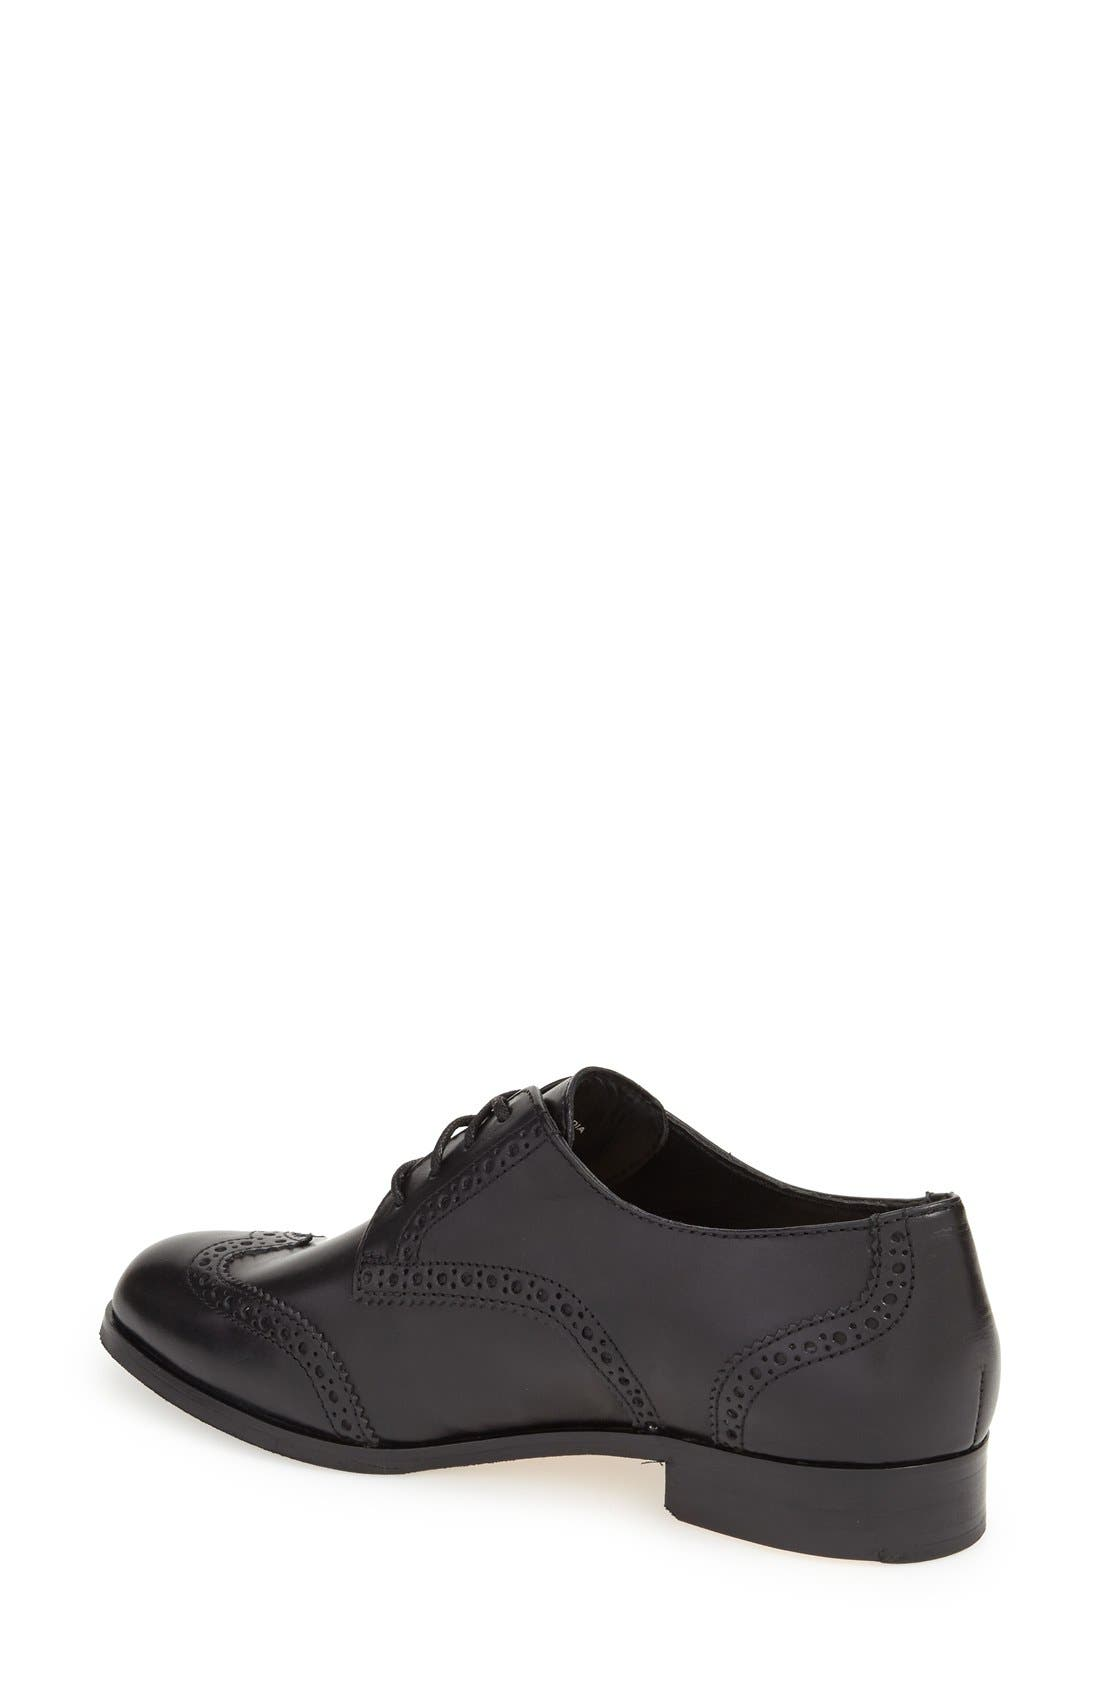 COLE HAAN,                             Grand.OS Oxford,                             Alternate thumbnail 3, color,                             001